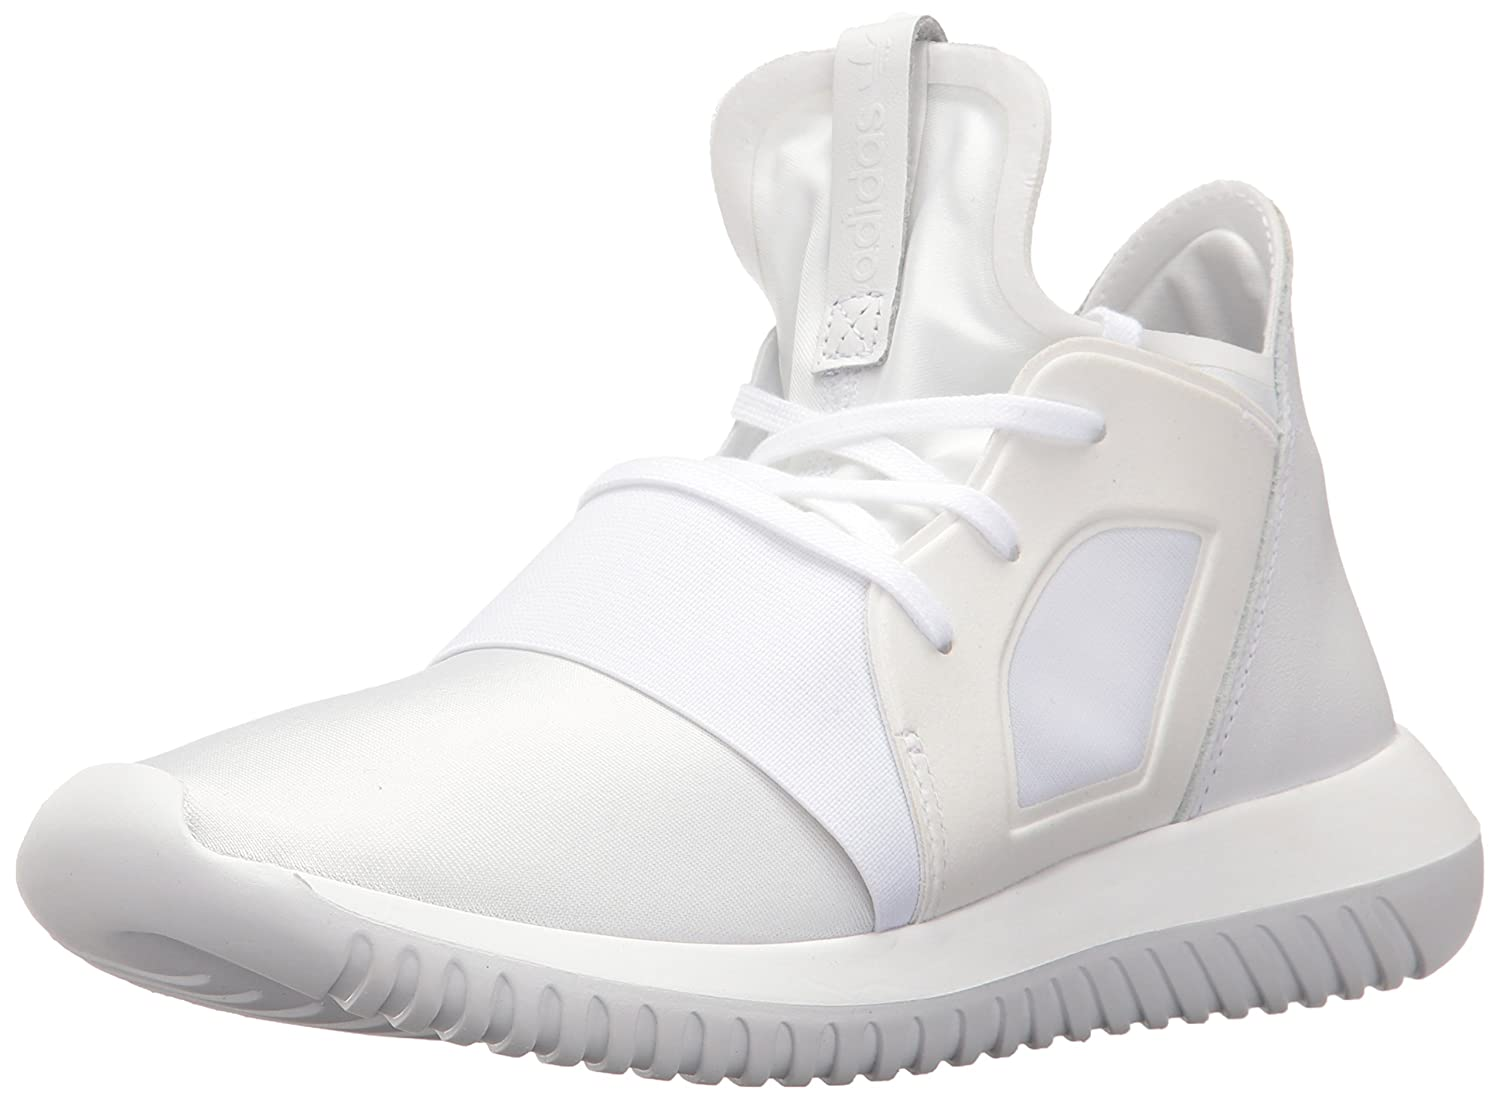 adidas Originals Tubular Defiant Fashion